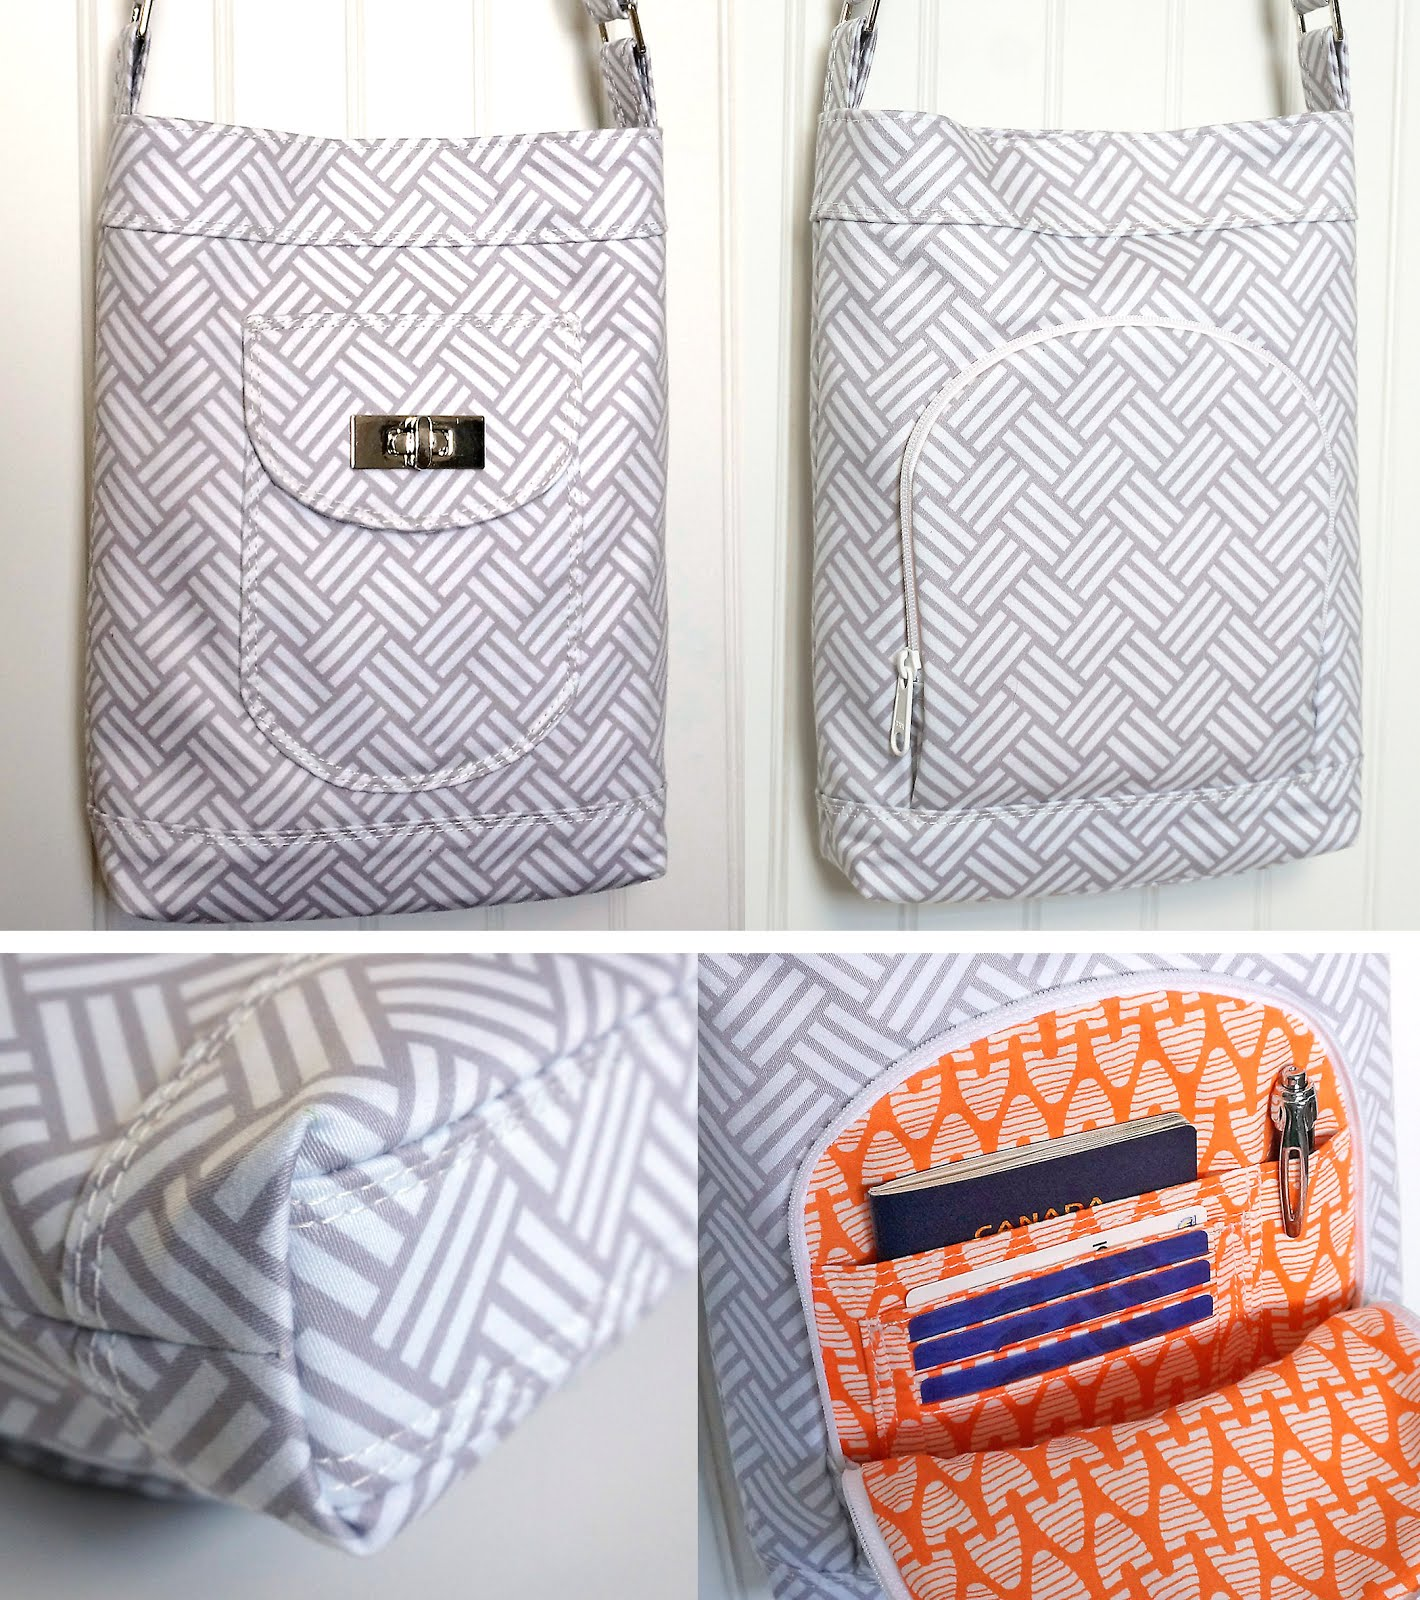 Emmaline Bags: Sewing Patterns and Purse Supplies: 12/01/2015 - 01 ...